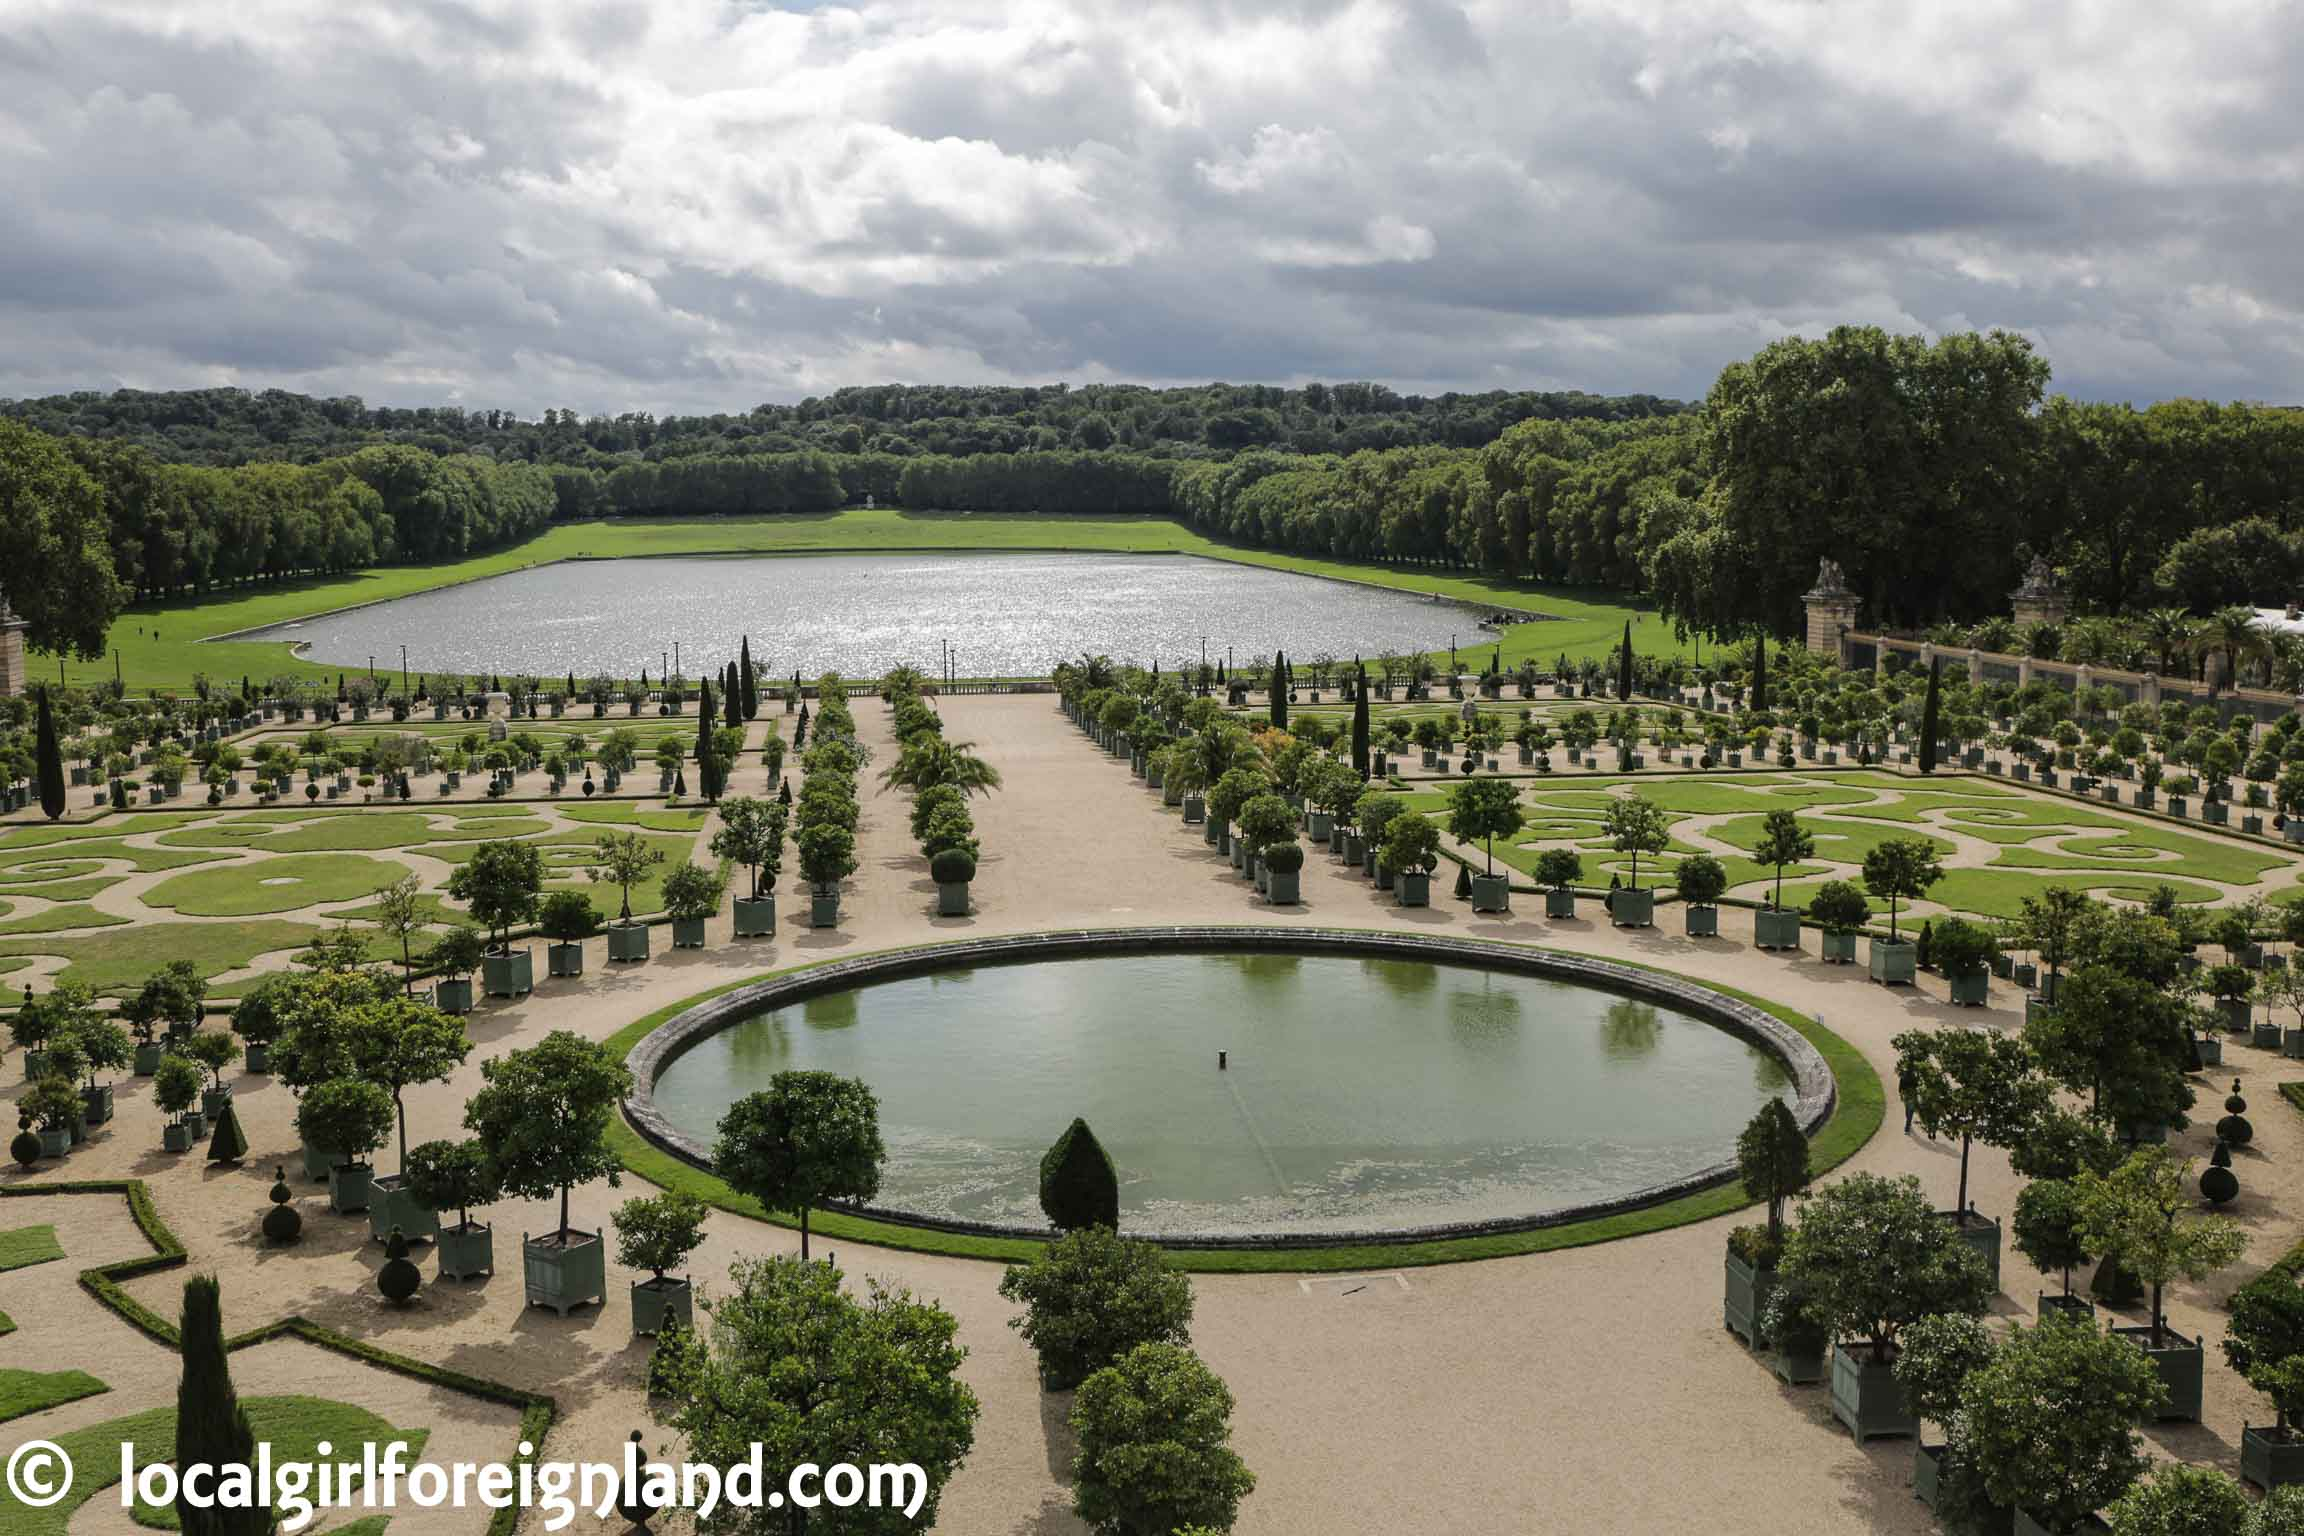 Palace-of-Versailles-garden-8361